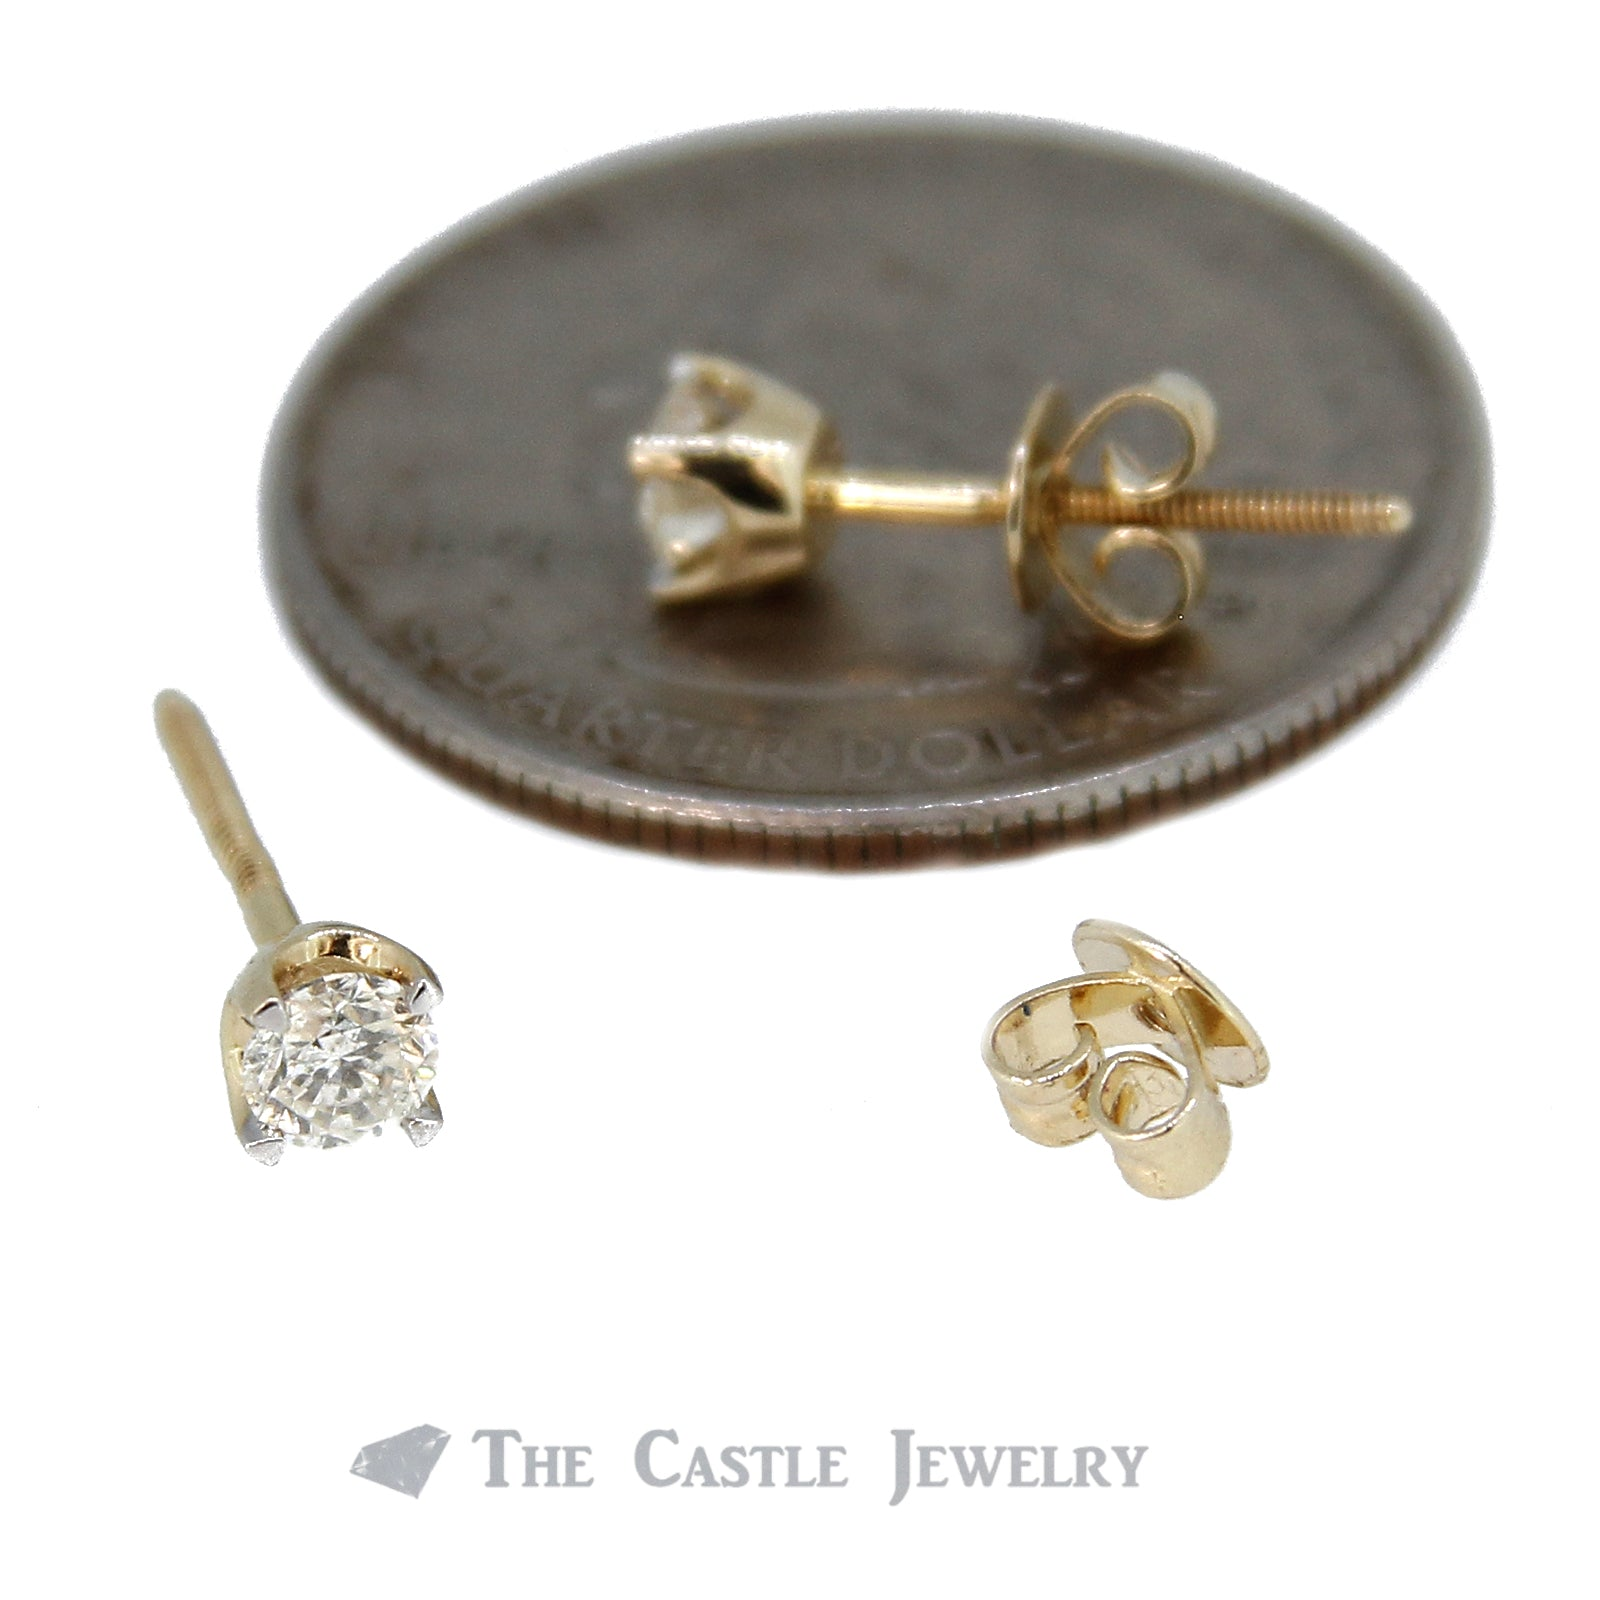 Diamond Stud Earrings 1/2cttw with Screw Backs in 14K Yellow Gold-2